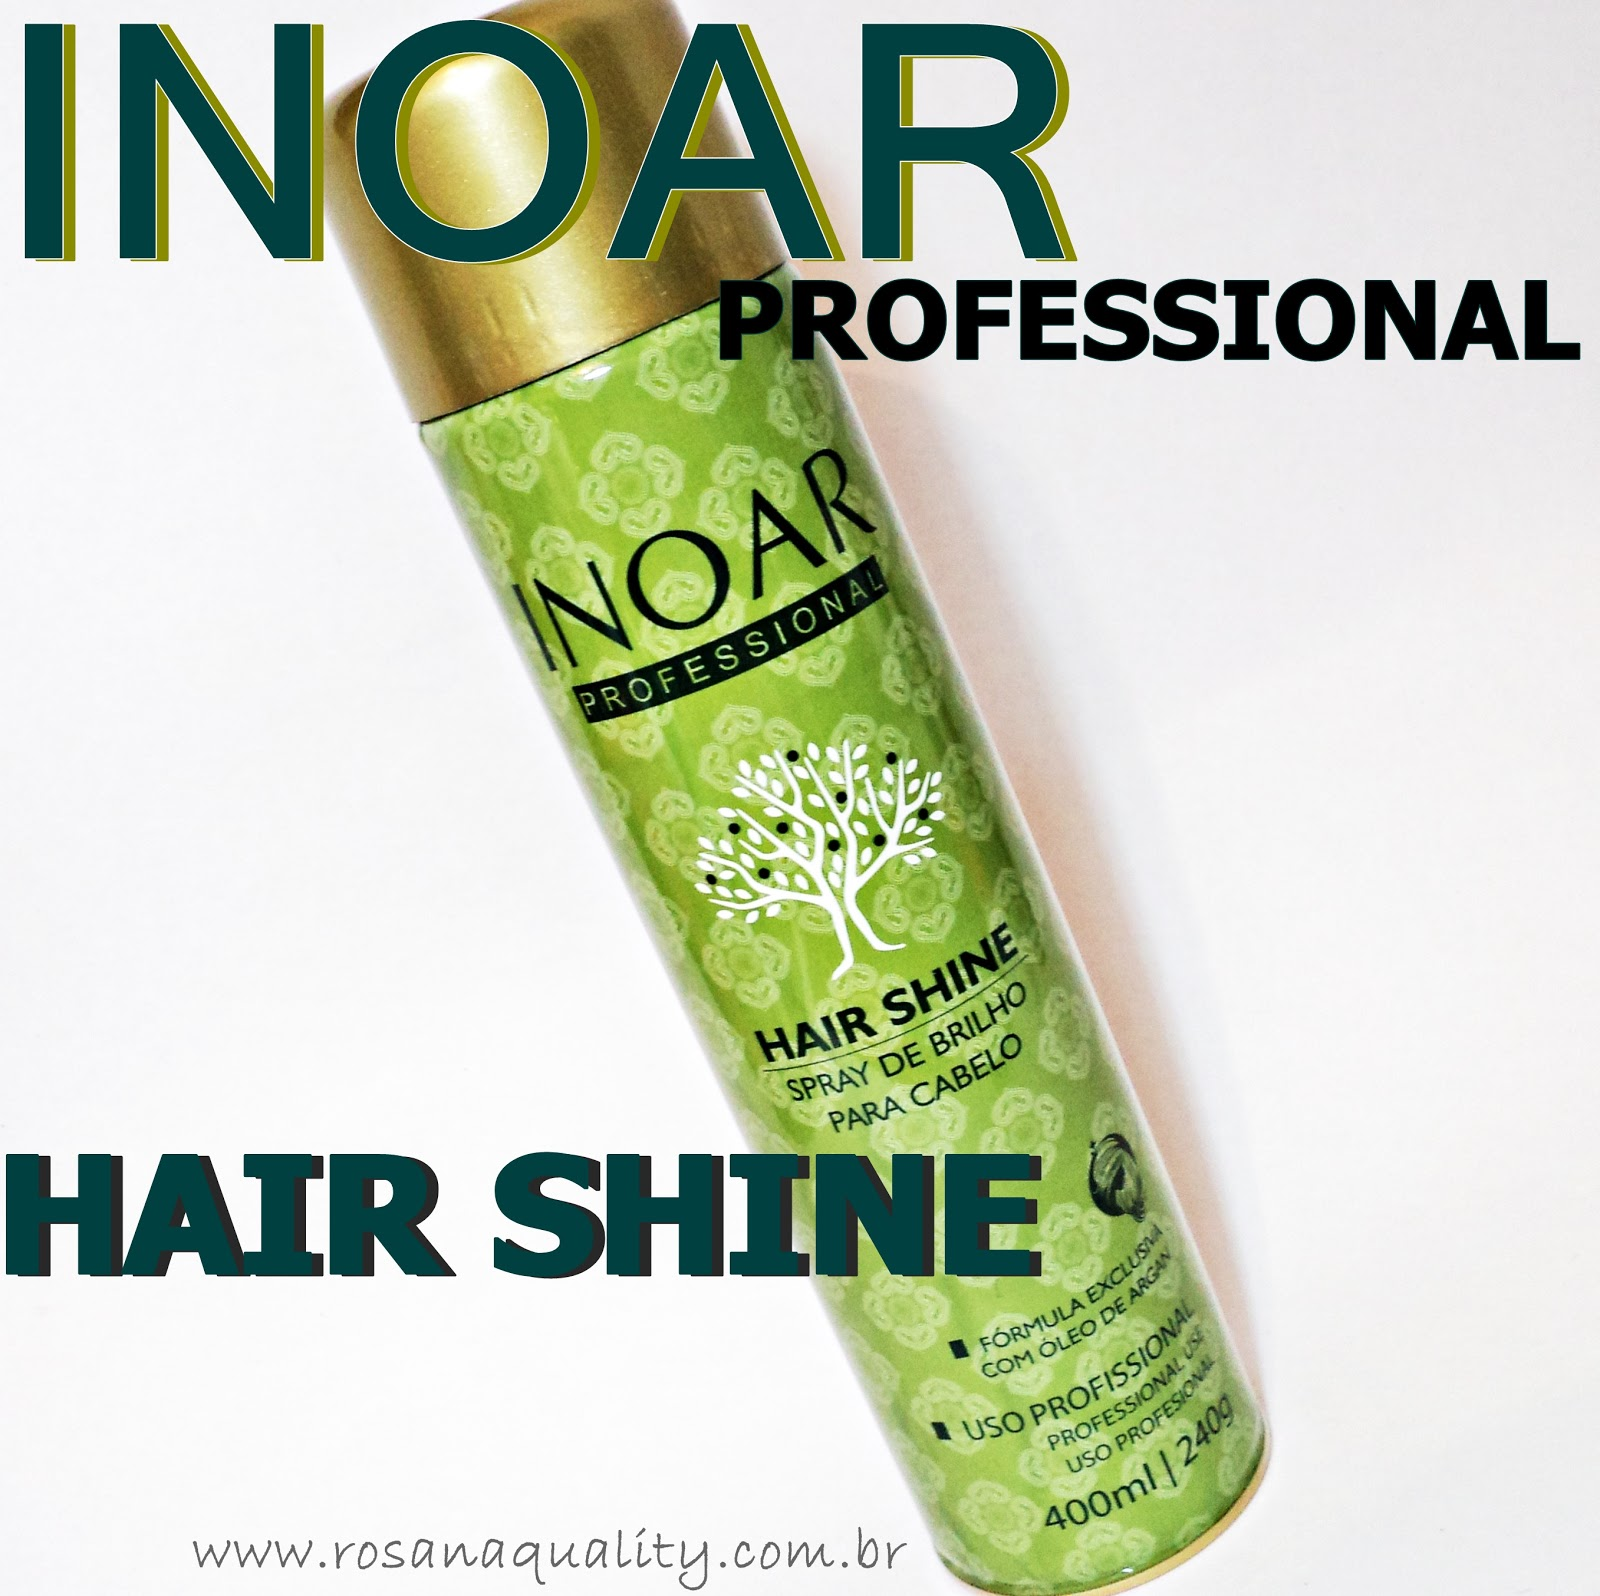 Hair Shine Inoar